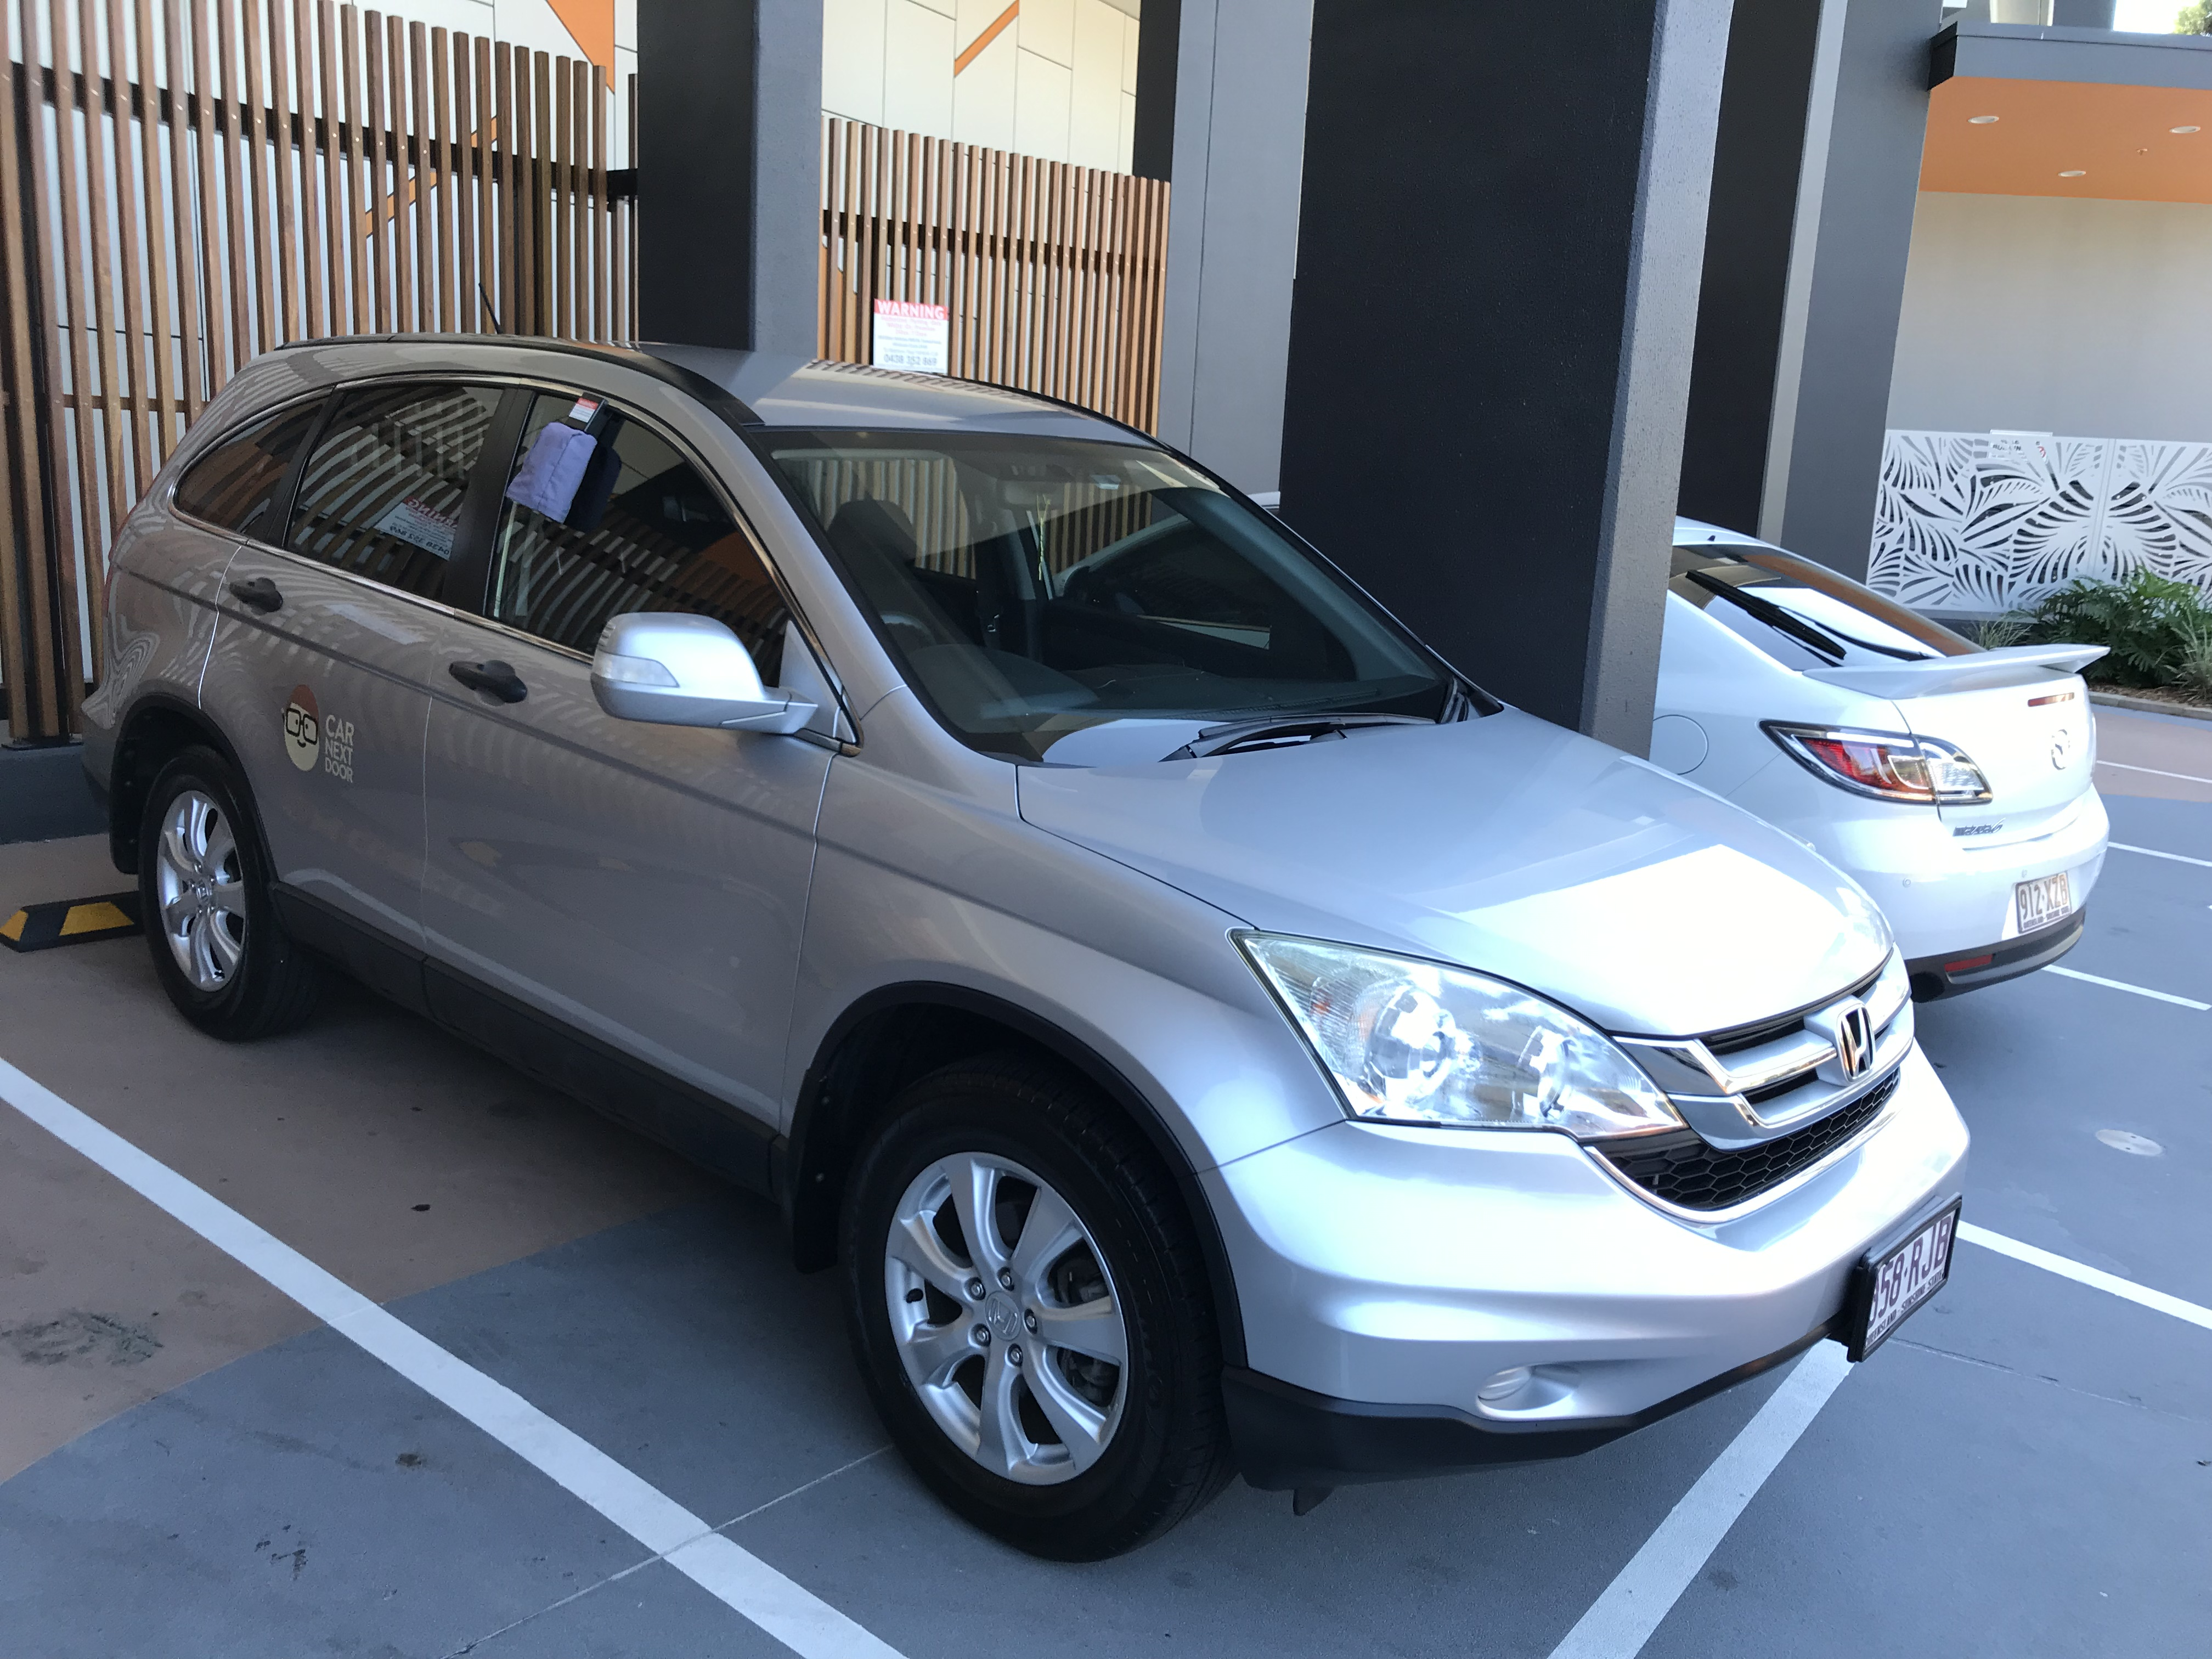 Picture of Thiago's 2010 Honda CRV